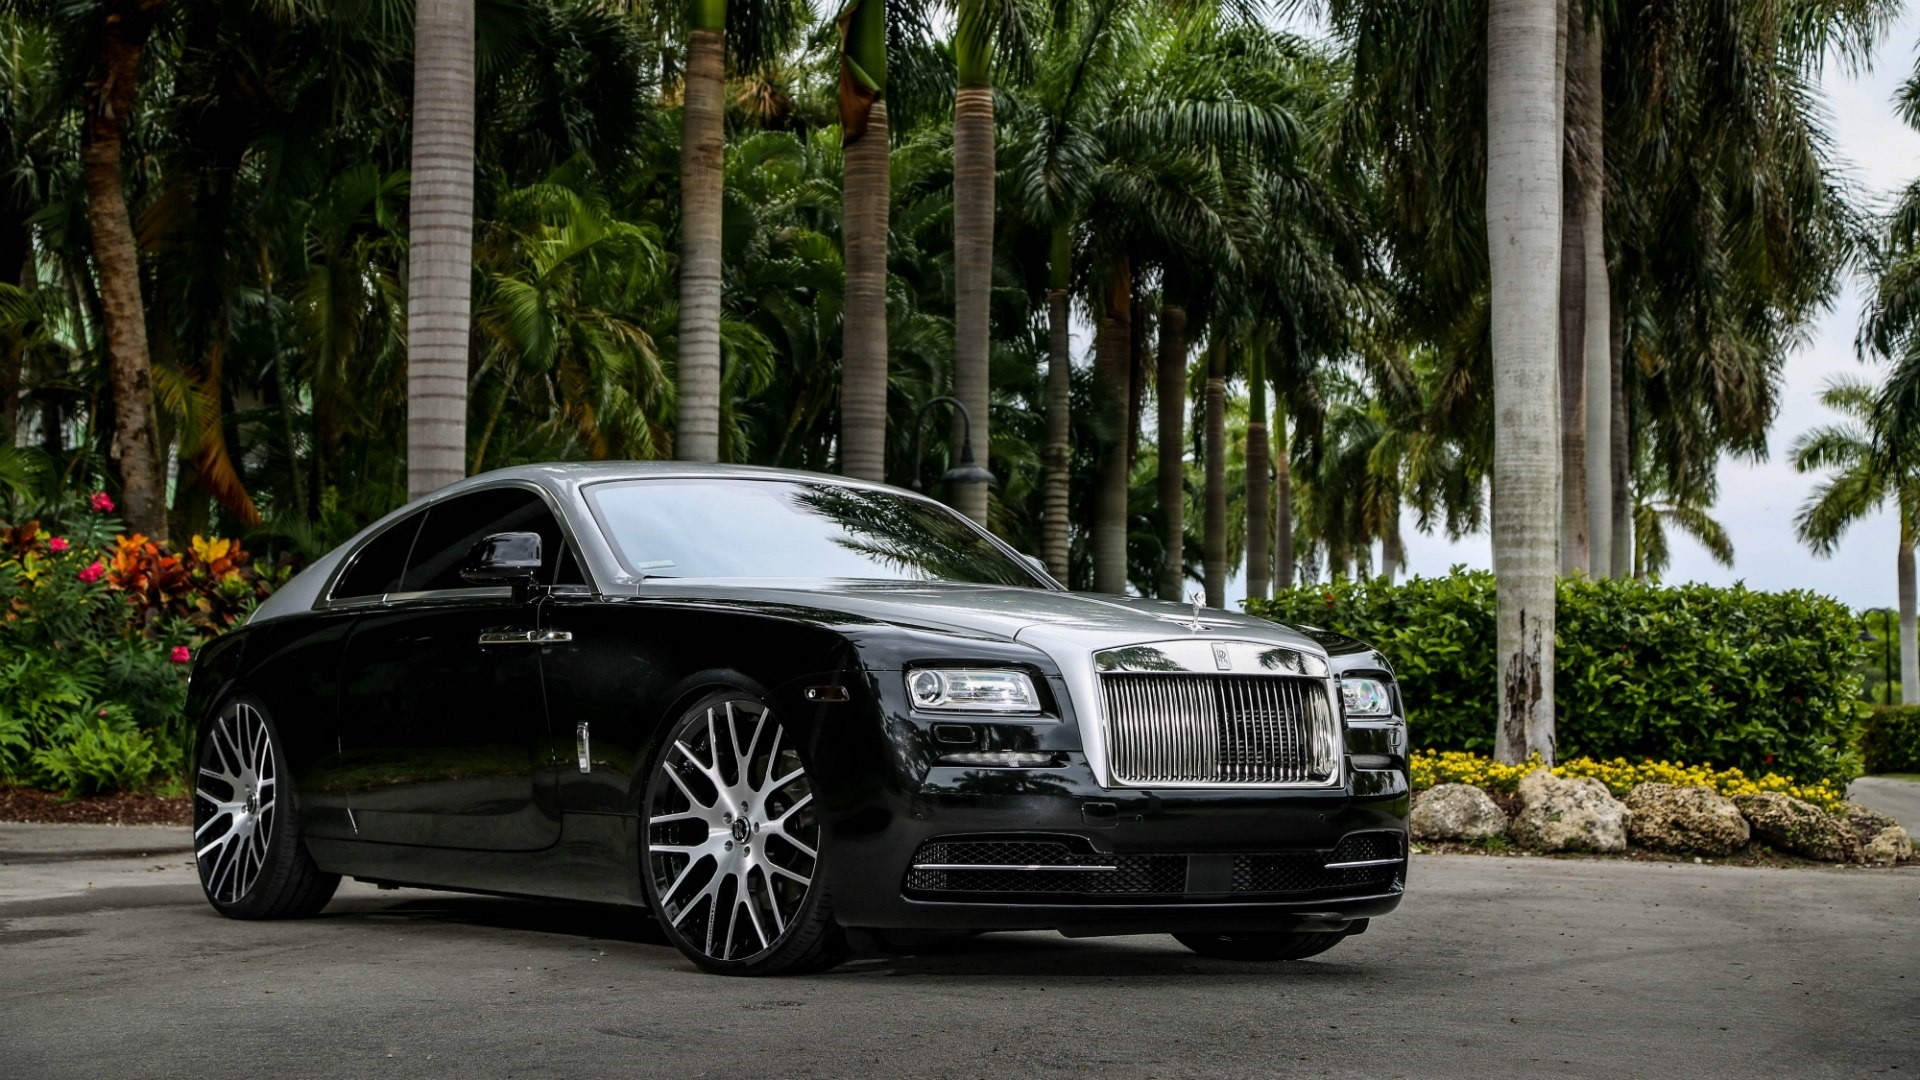 Rolls Royce Wraith Free Wallpaper and Background